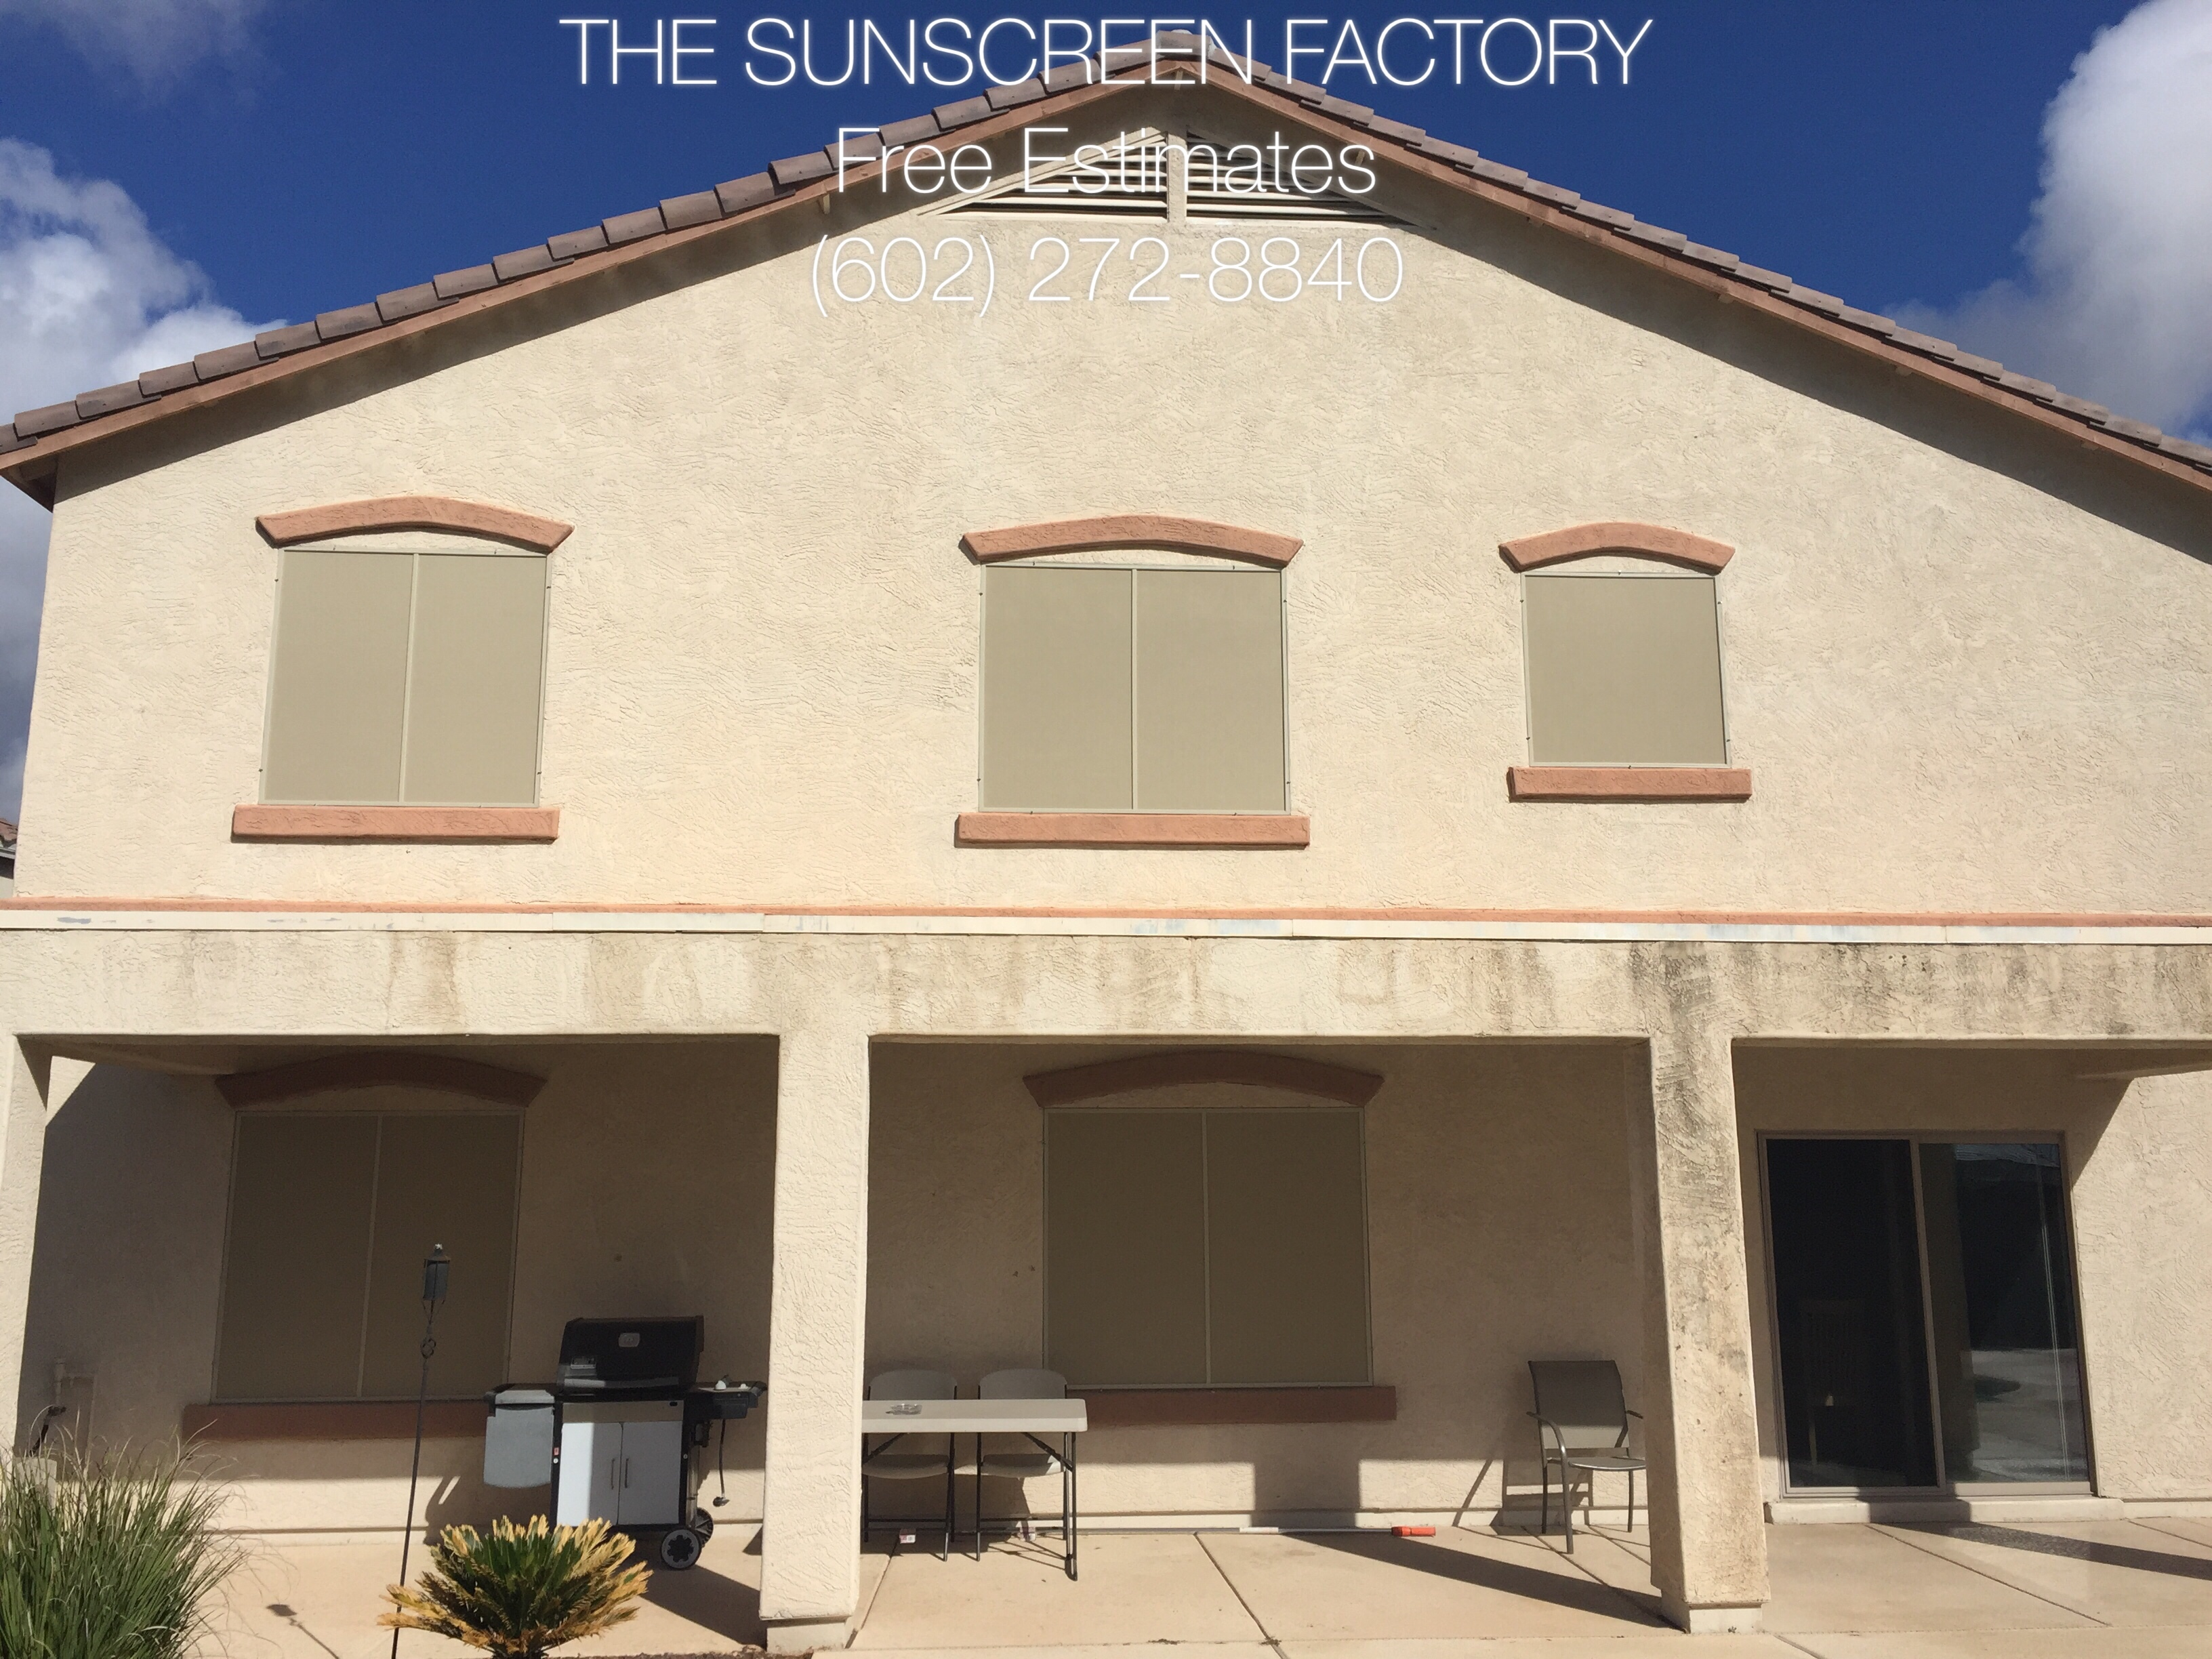 WINDOW SUNSCREENS BUCKEYE, AZ